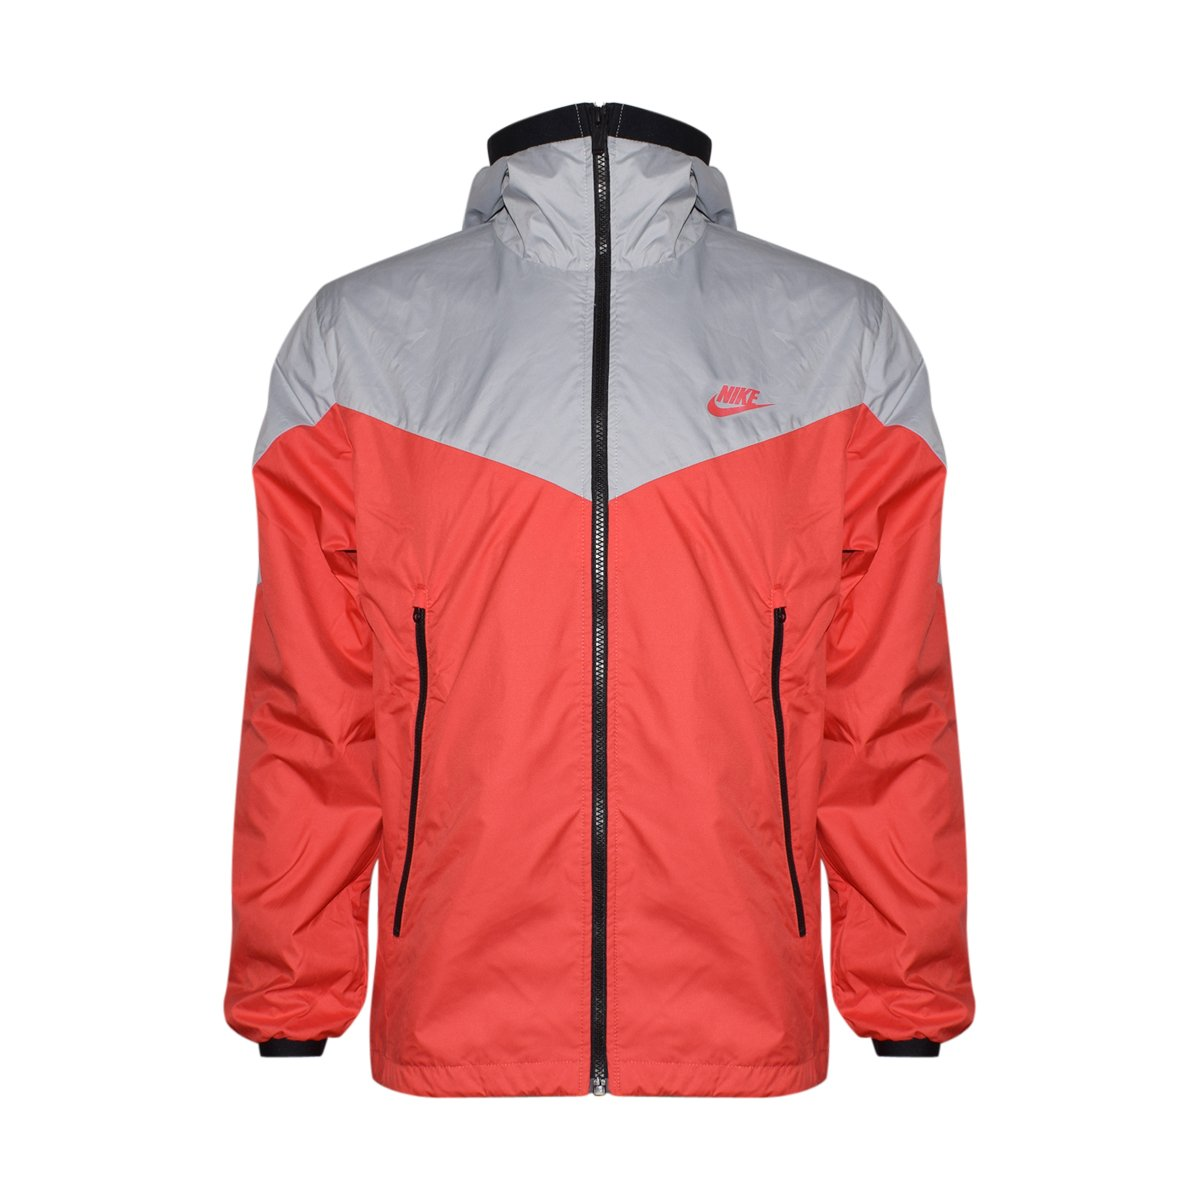 Nike Mens Windrunner Hooded Full Zip Track Jacket (Wolf Grey/Track Red/Grey, X-Large) by Nike